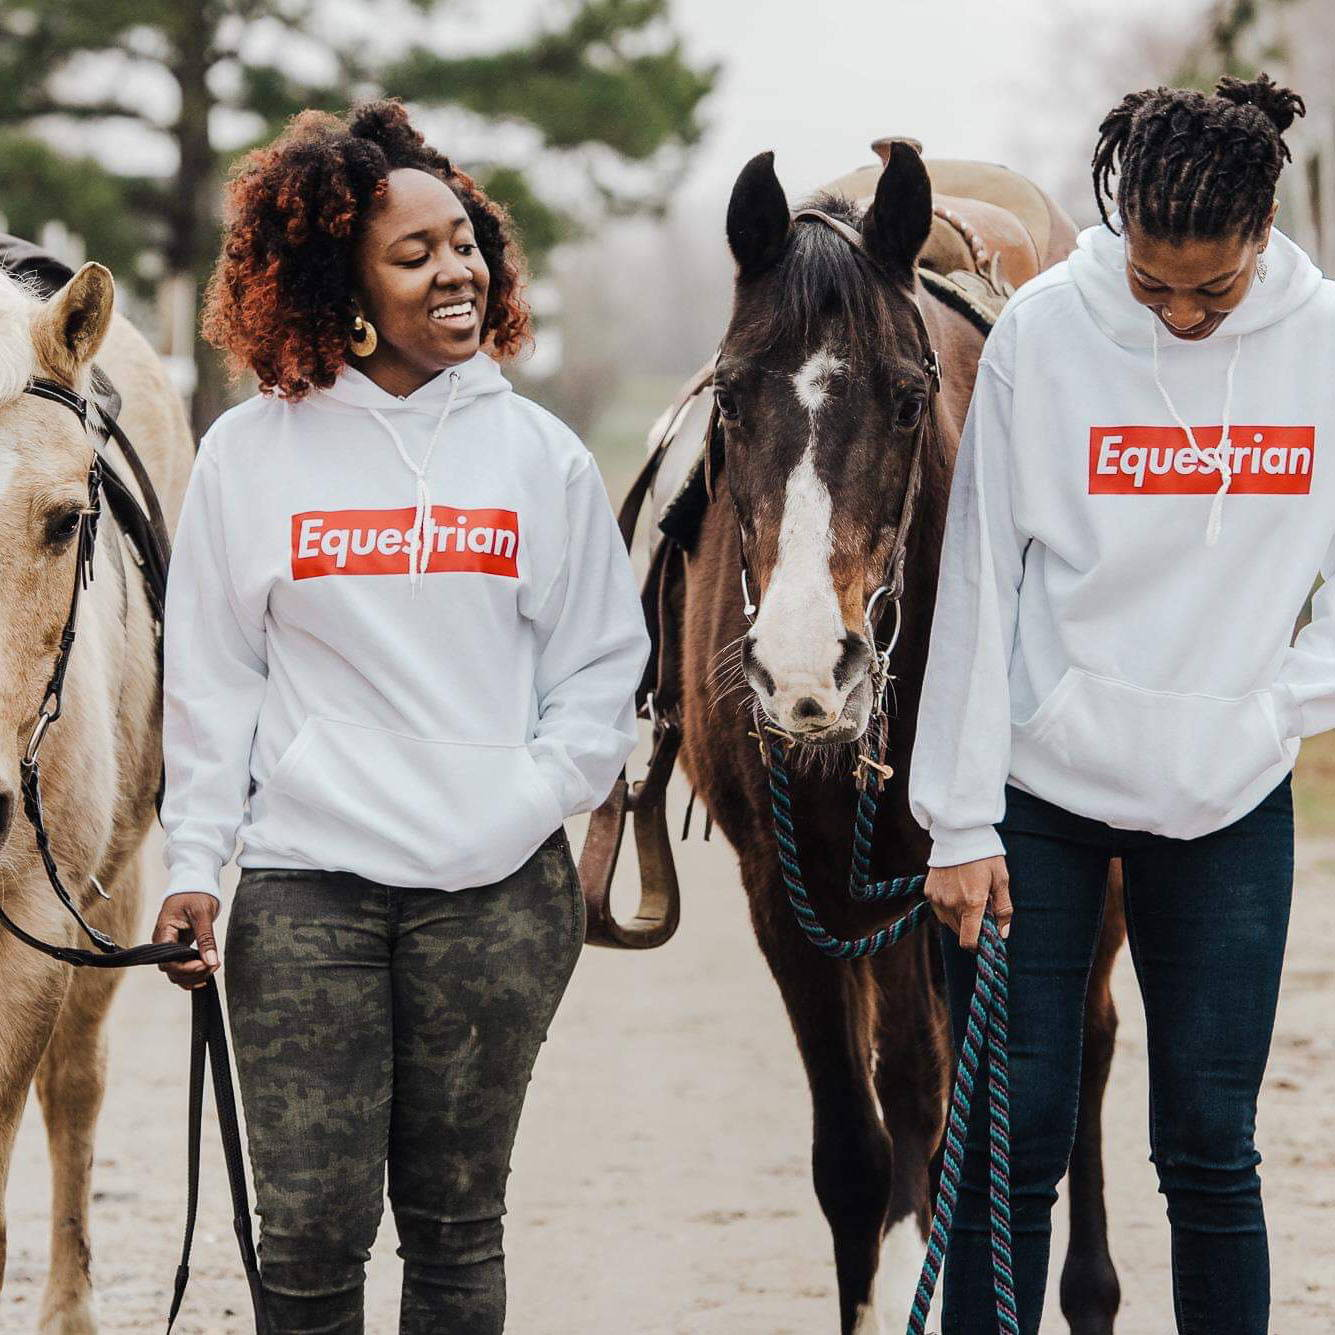 Founders/creators of Young Black Equestrians podcast